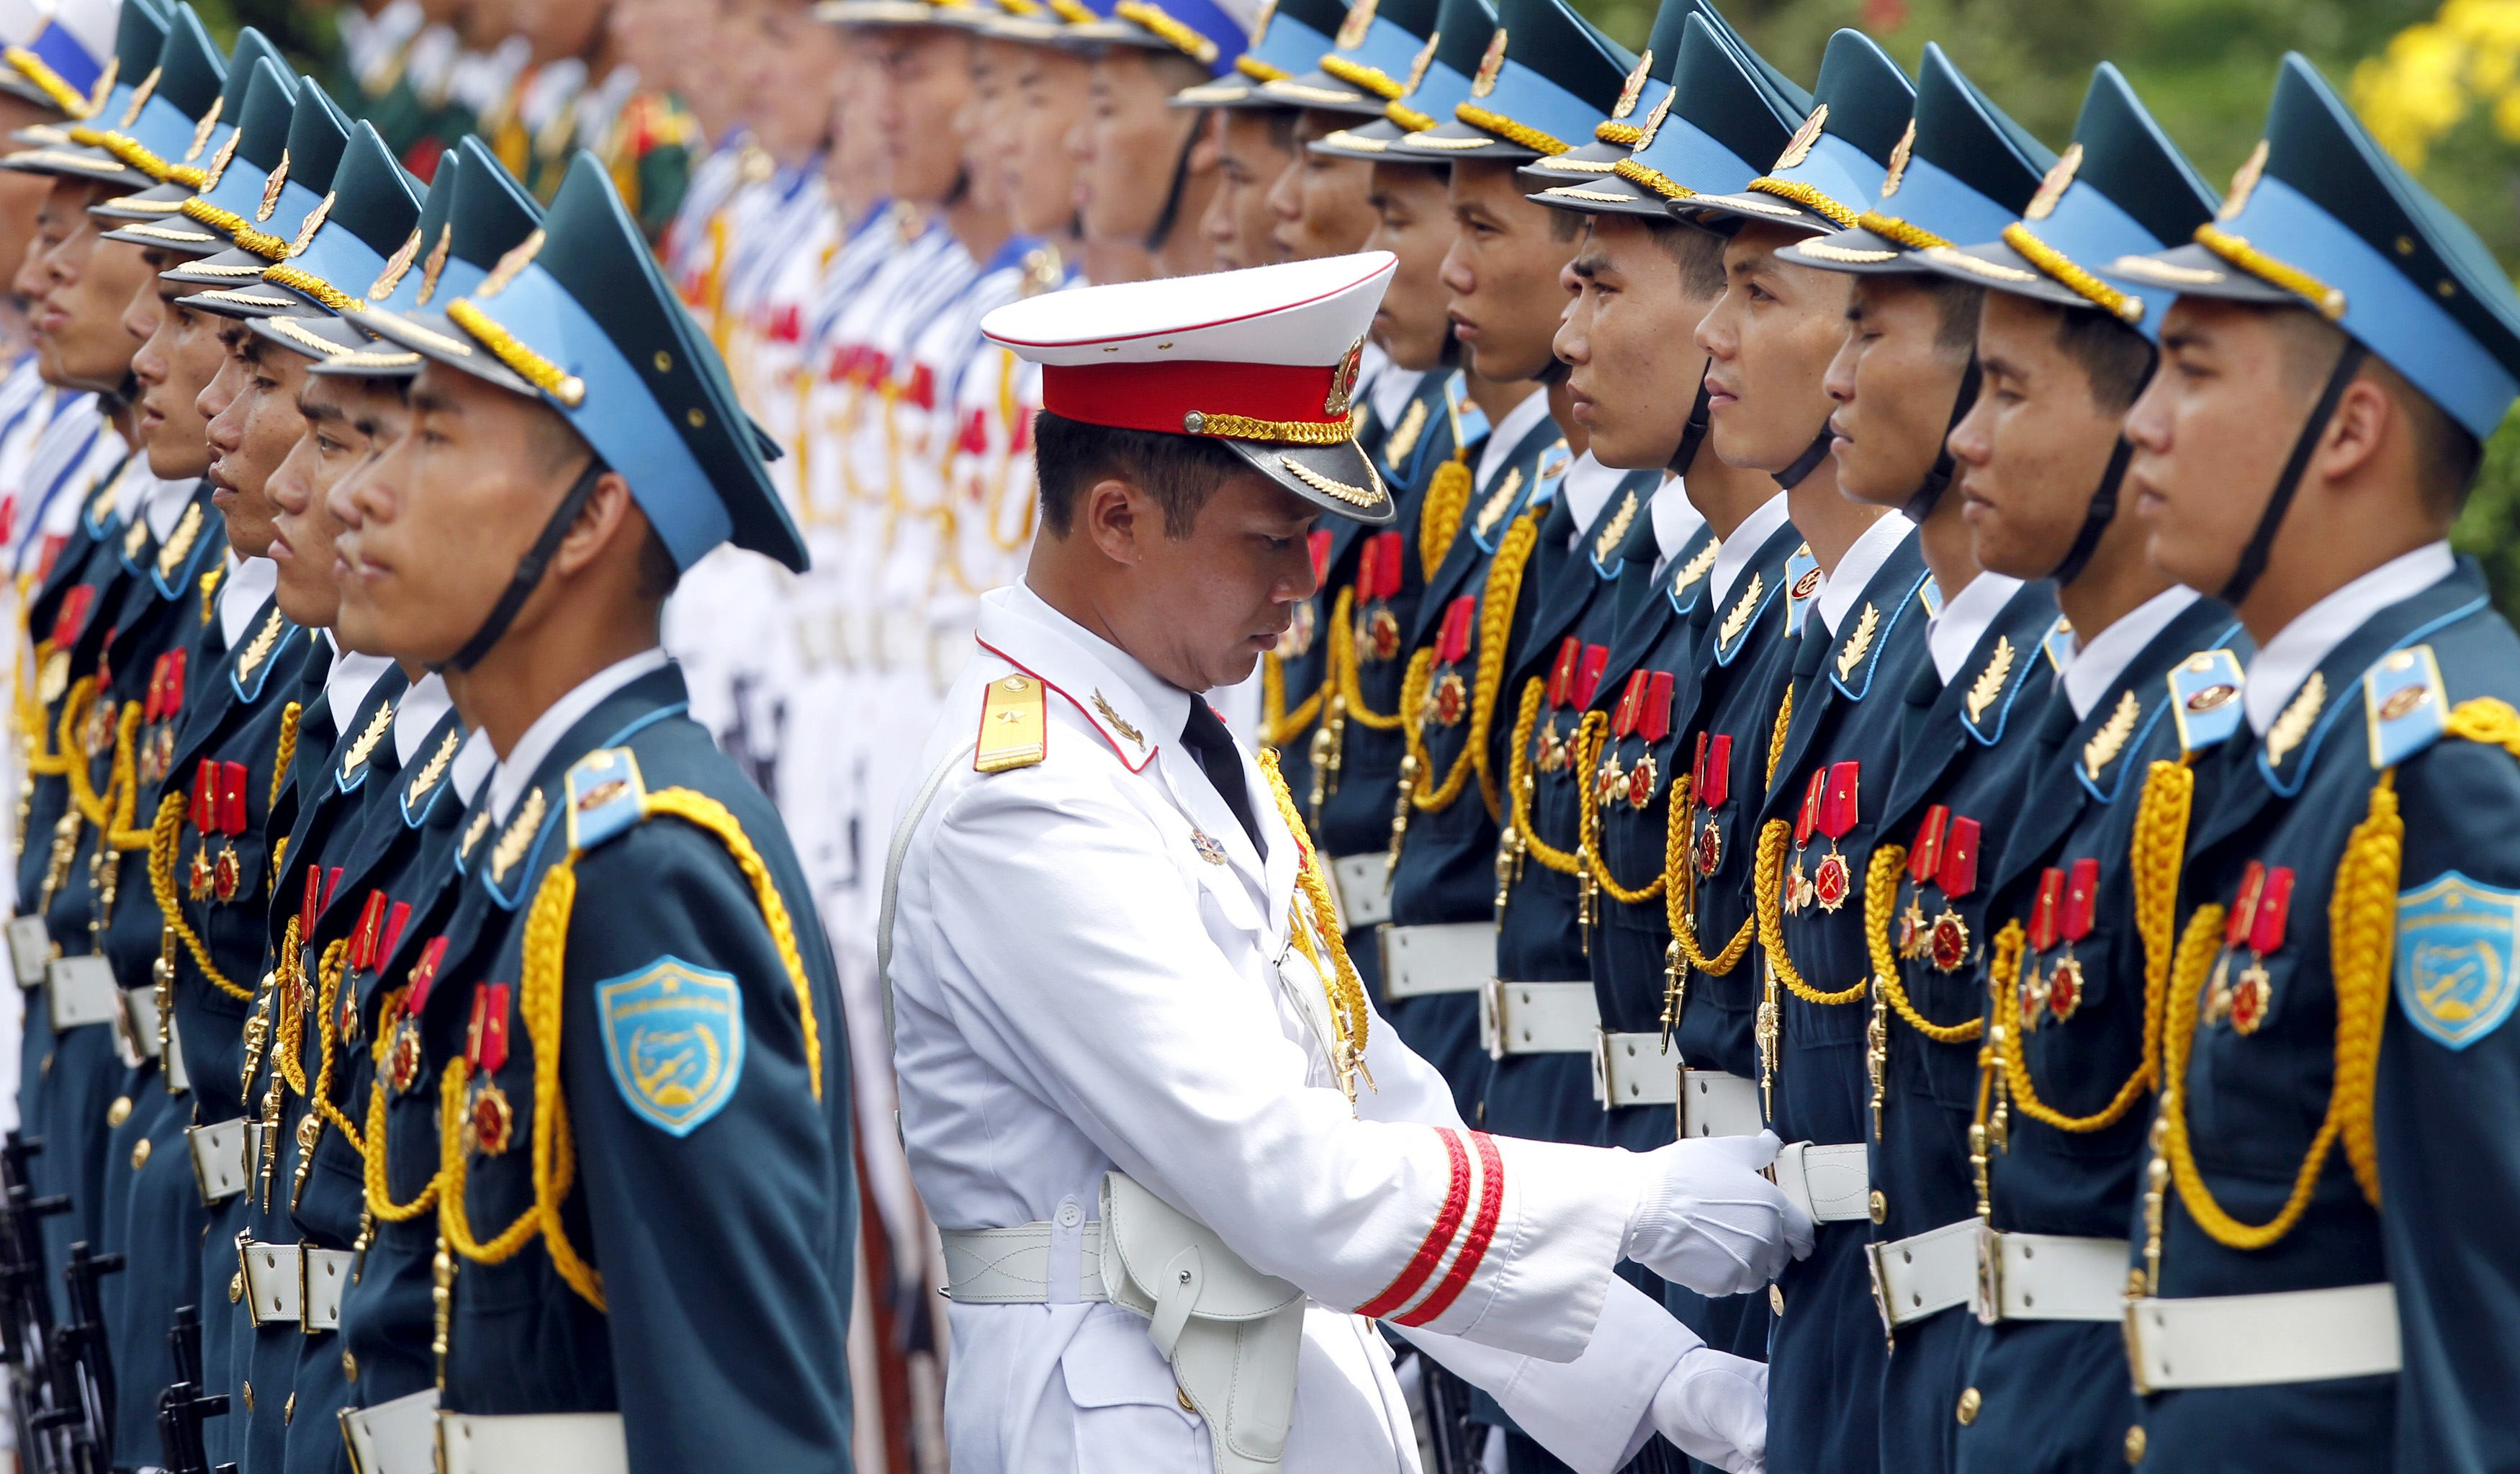 Tung checks the alignment of the honour guard before a welcoming ceremony for Mukherjee in Hanoi...Captain Bui Sy Tung checks the alignment of the honour guard before a welcoming ceremony for Indian President Pranab Mukherjee at the Presidential Palace in Hanoi September 15, 2014. REUTERS/Kham (VIETNAM - Tags: POLITICS MILITARY)